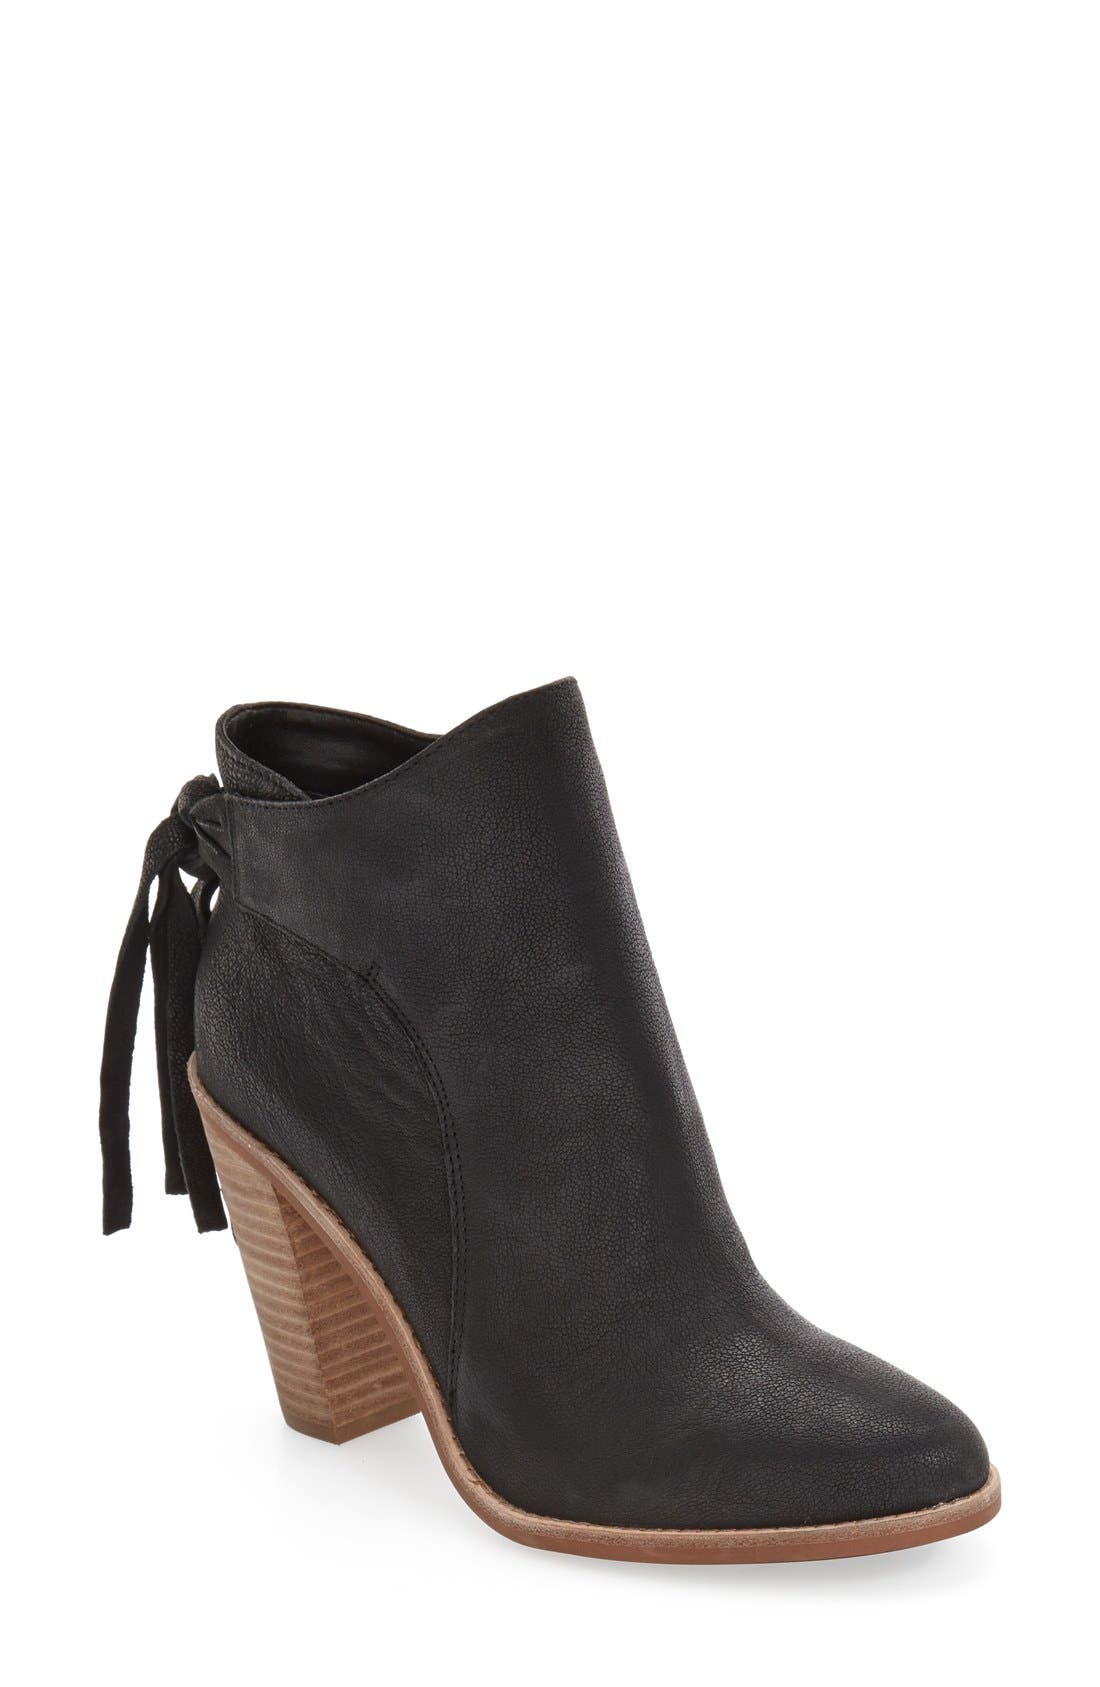 Main Image - Vince Camuto 'Linford' Bootie (Women)